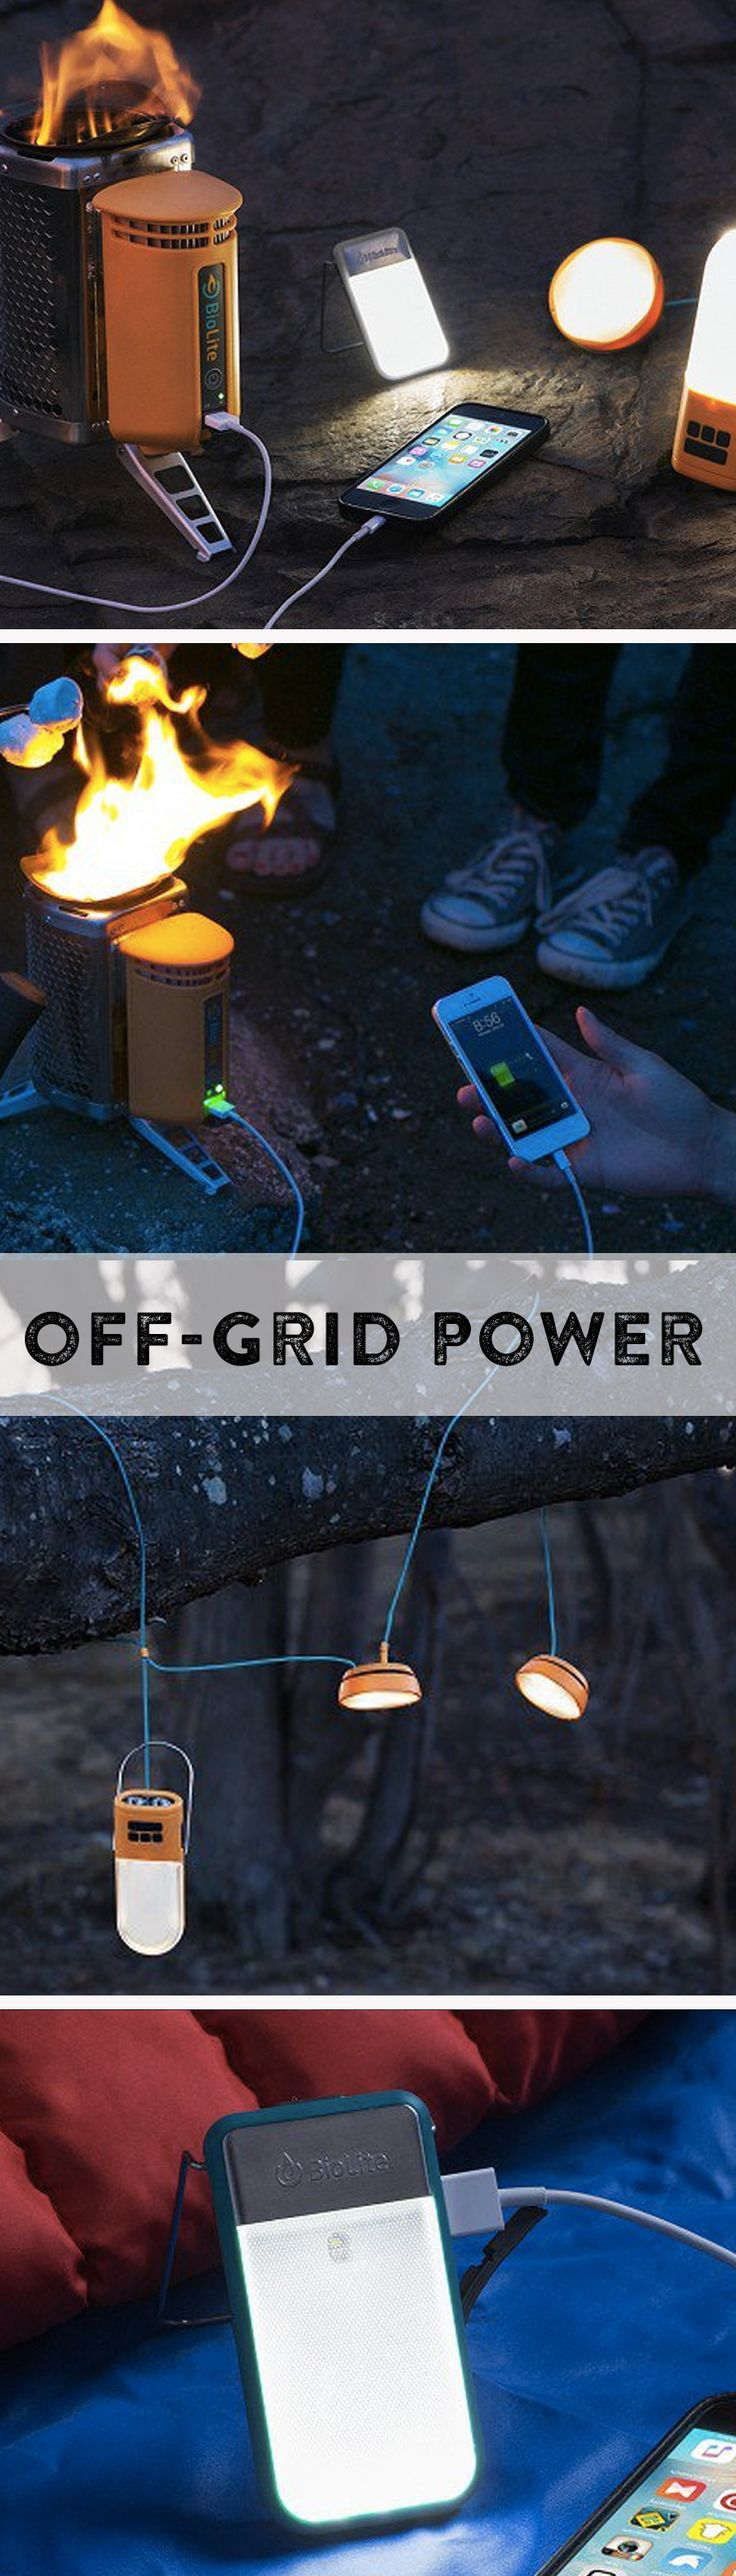 Off-the-grid lighting and charging that goes anywhere. The technology works wonders here and helps empower those is developing areas, too.